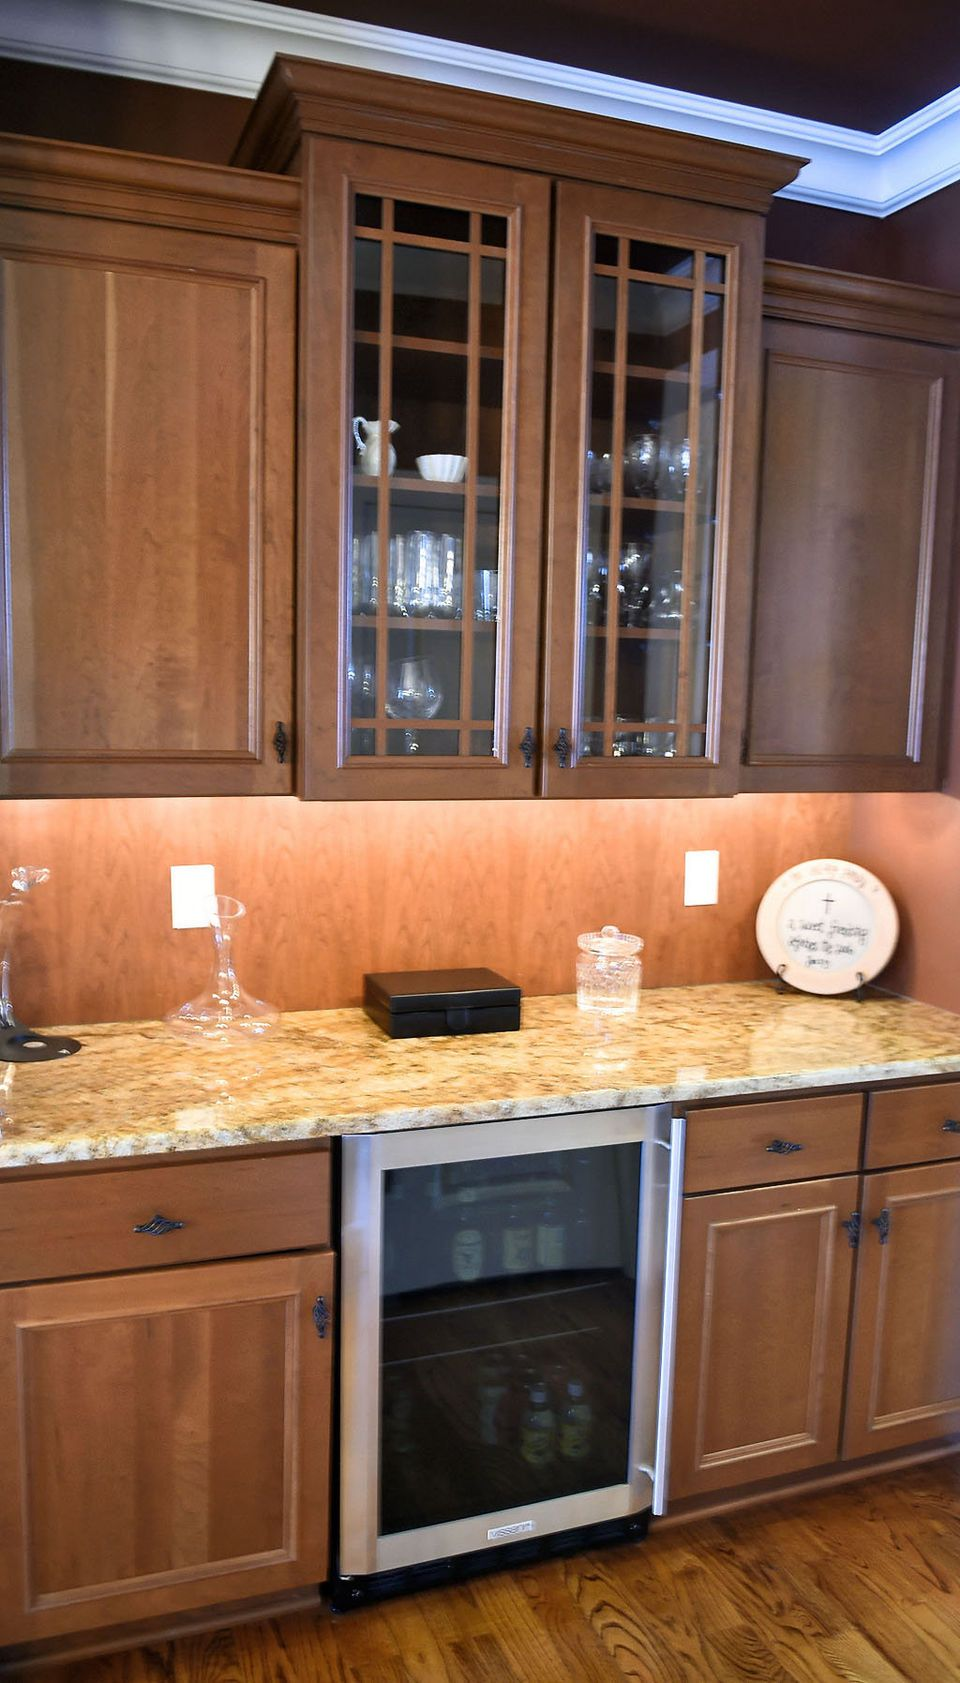 Butler S Pantry In Kitchen With Granite Countertop Mission Style Cabinetry And A Wine Chiller Kitchen Granite Countertops Home